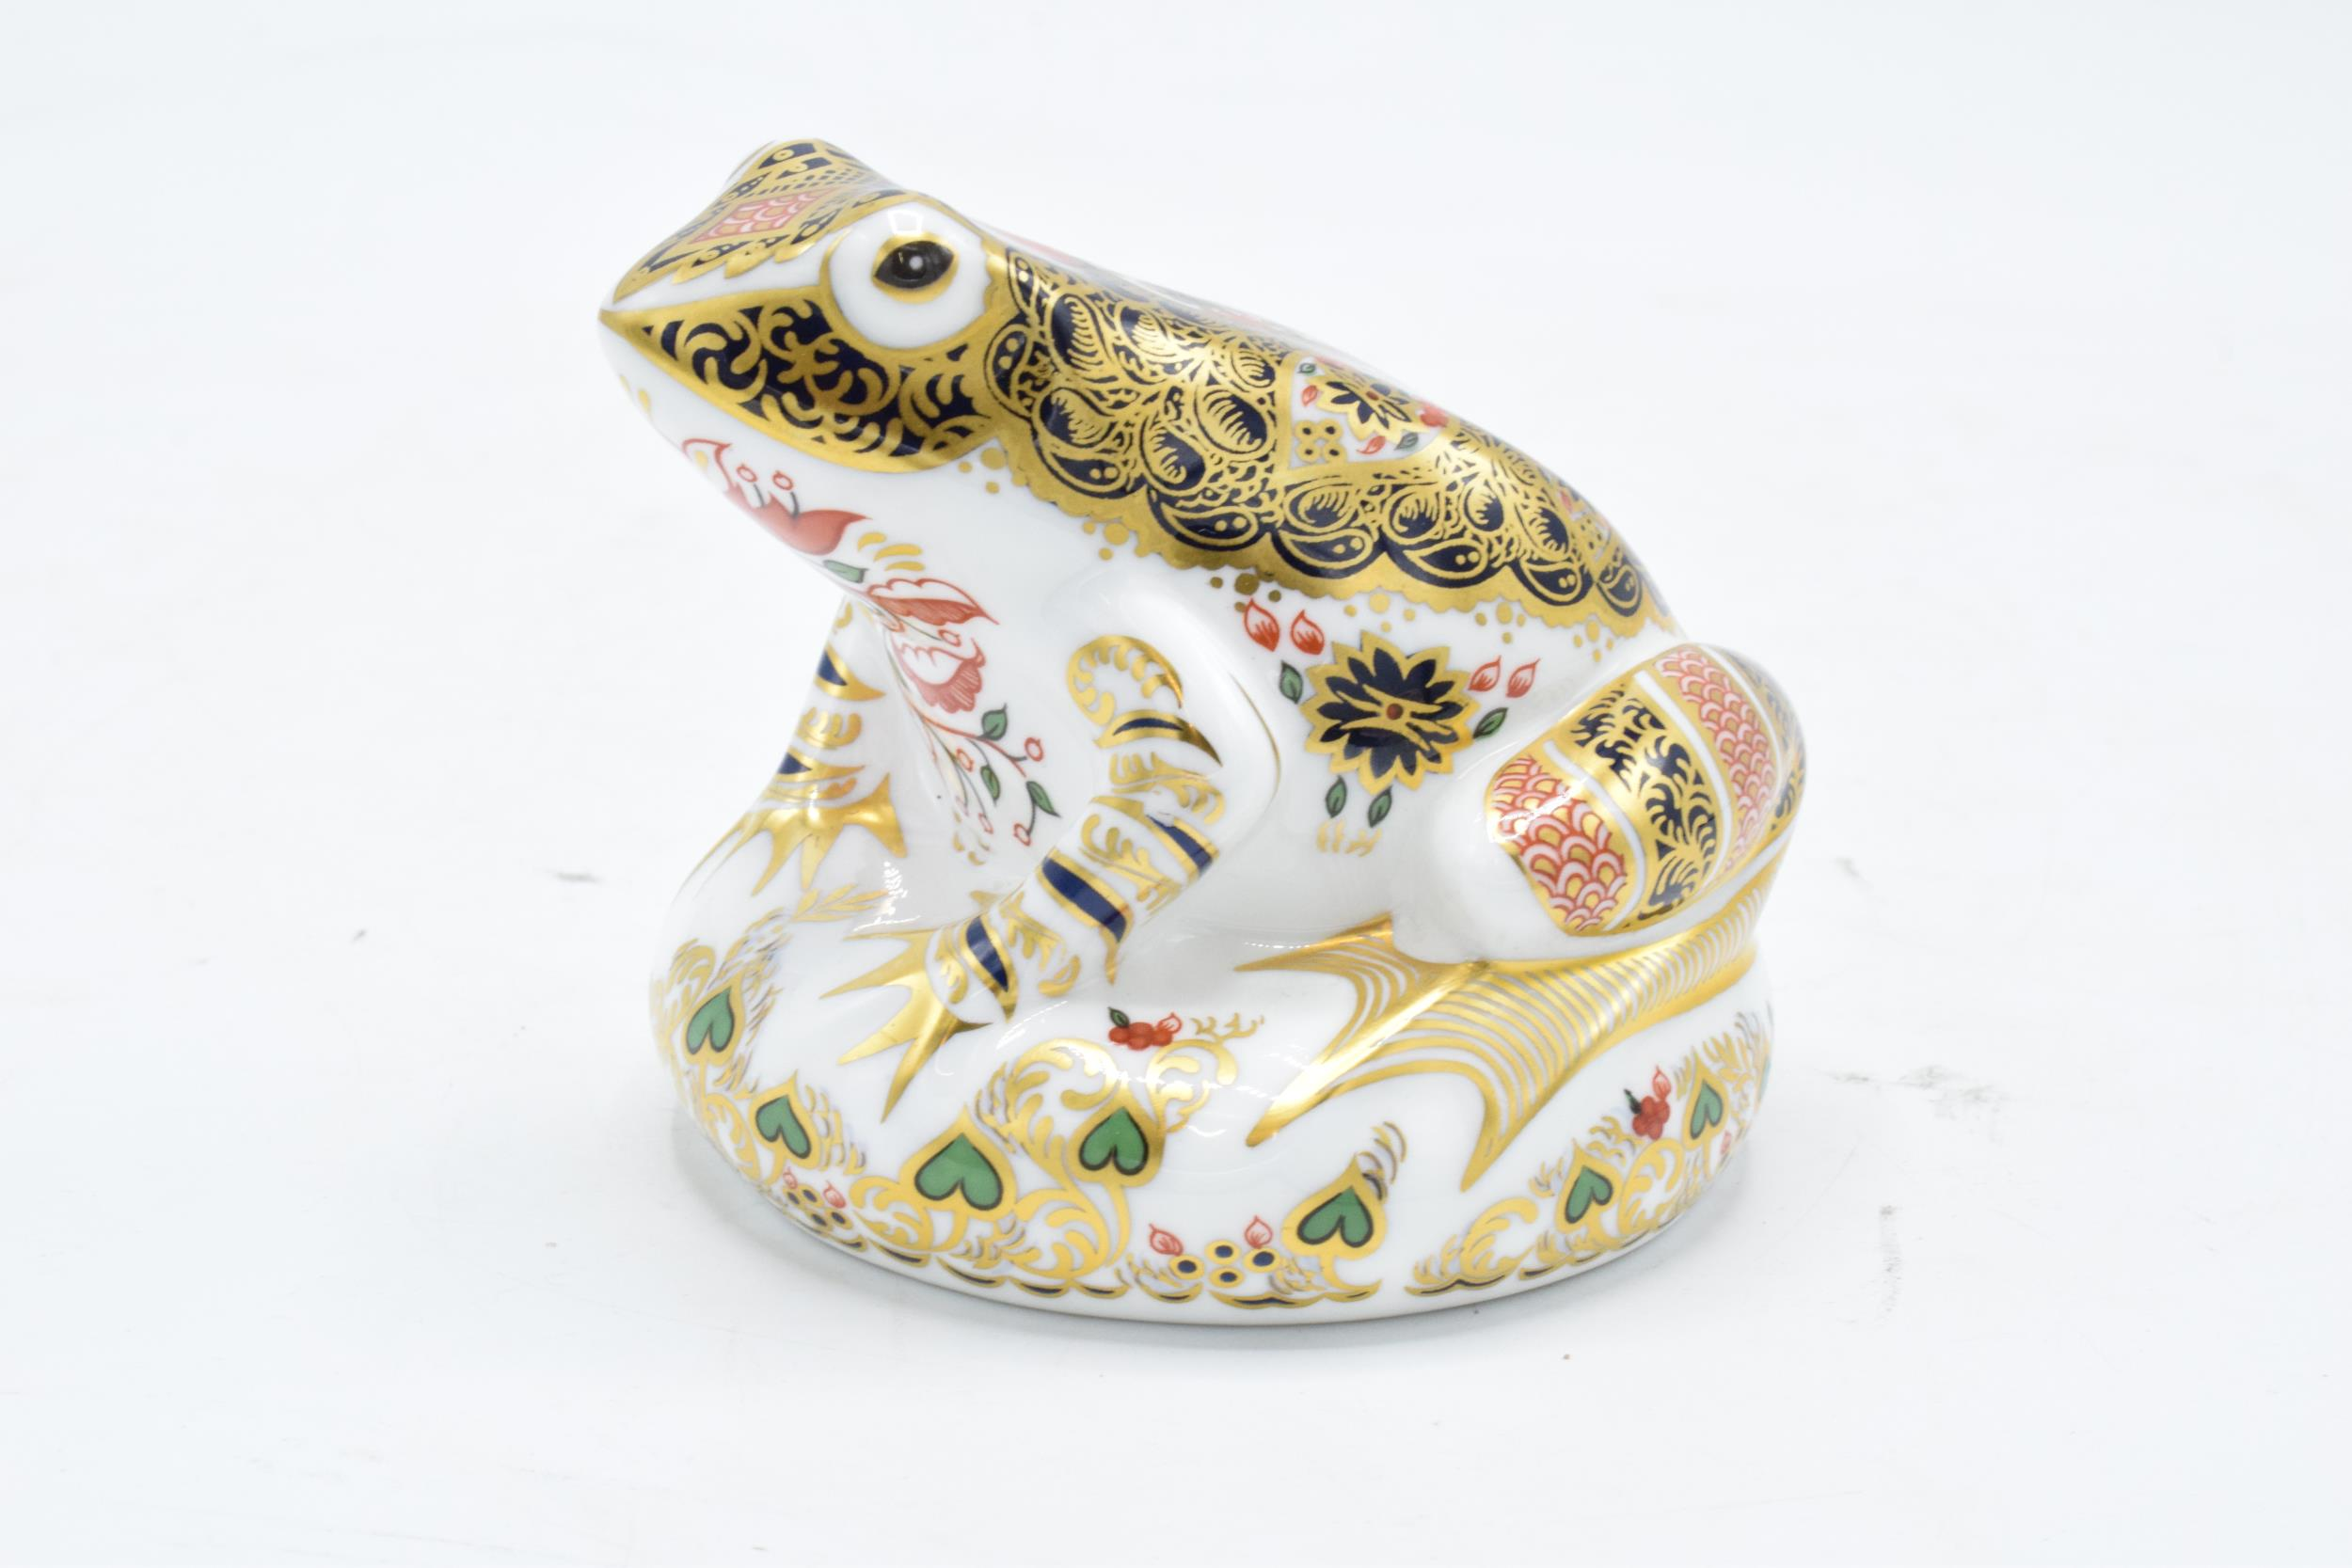 Boxed Royal Crown Derby paperweight in the form of an Old Imari Frog. First quality with stopper and